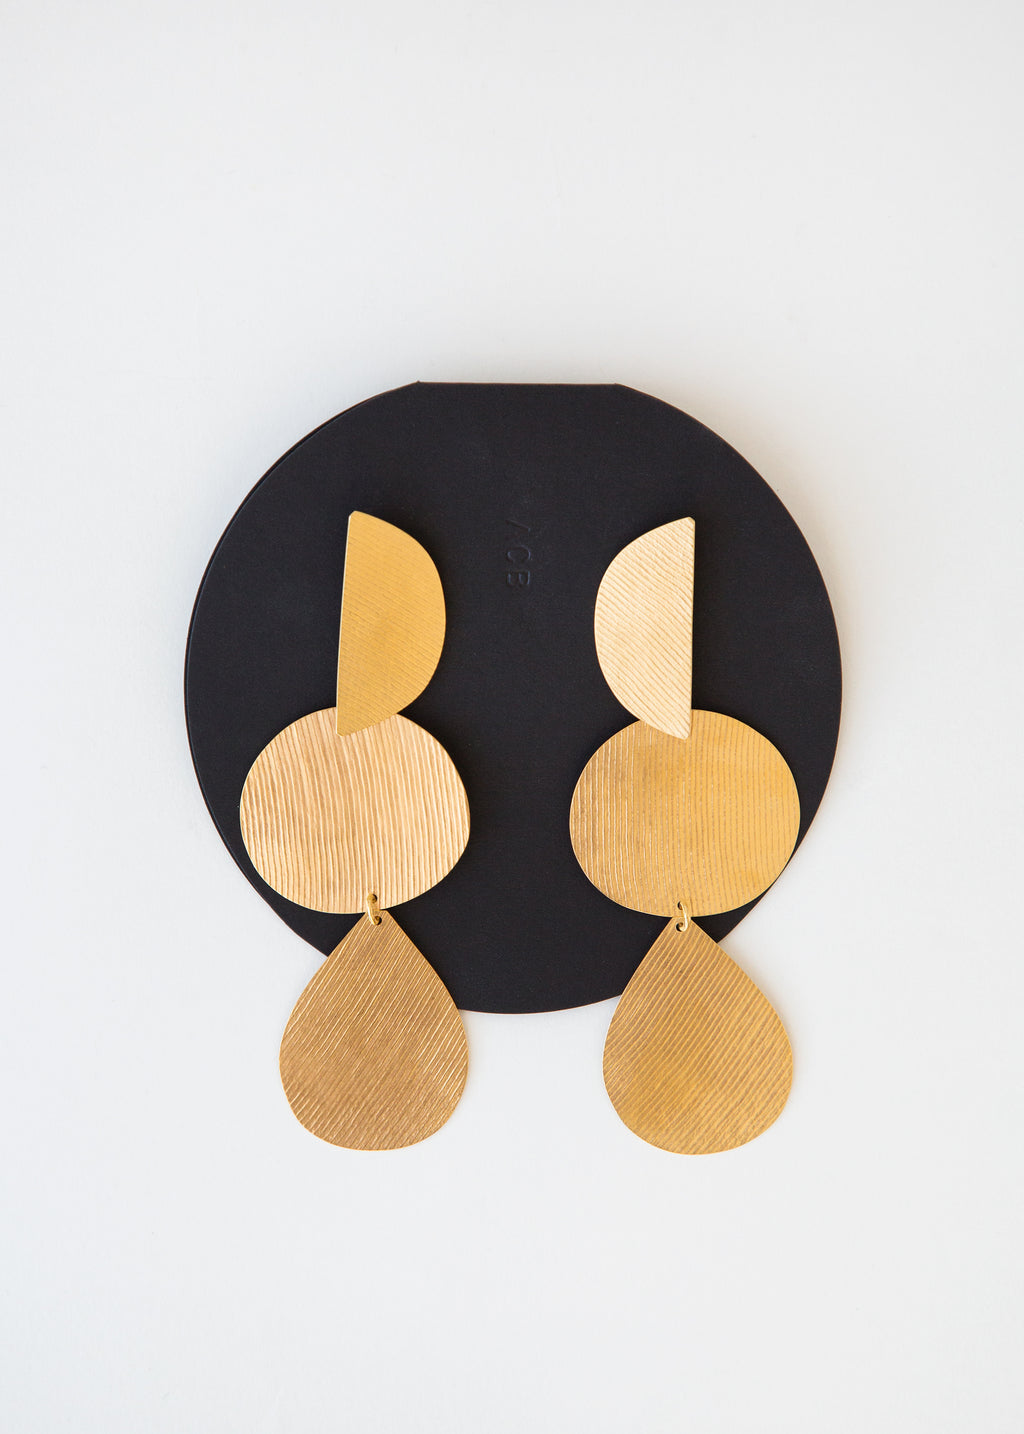 Annie Costello Brown Thea Earring Gold - SOLD OUT